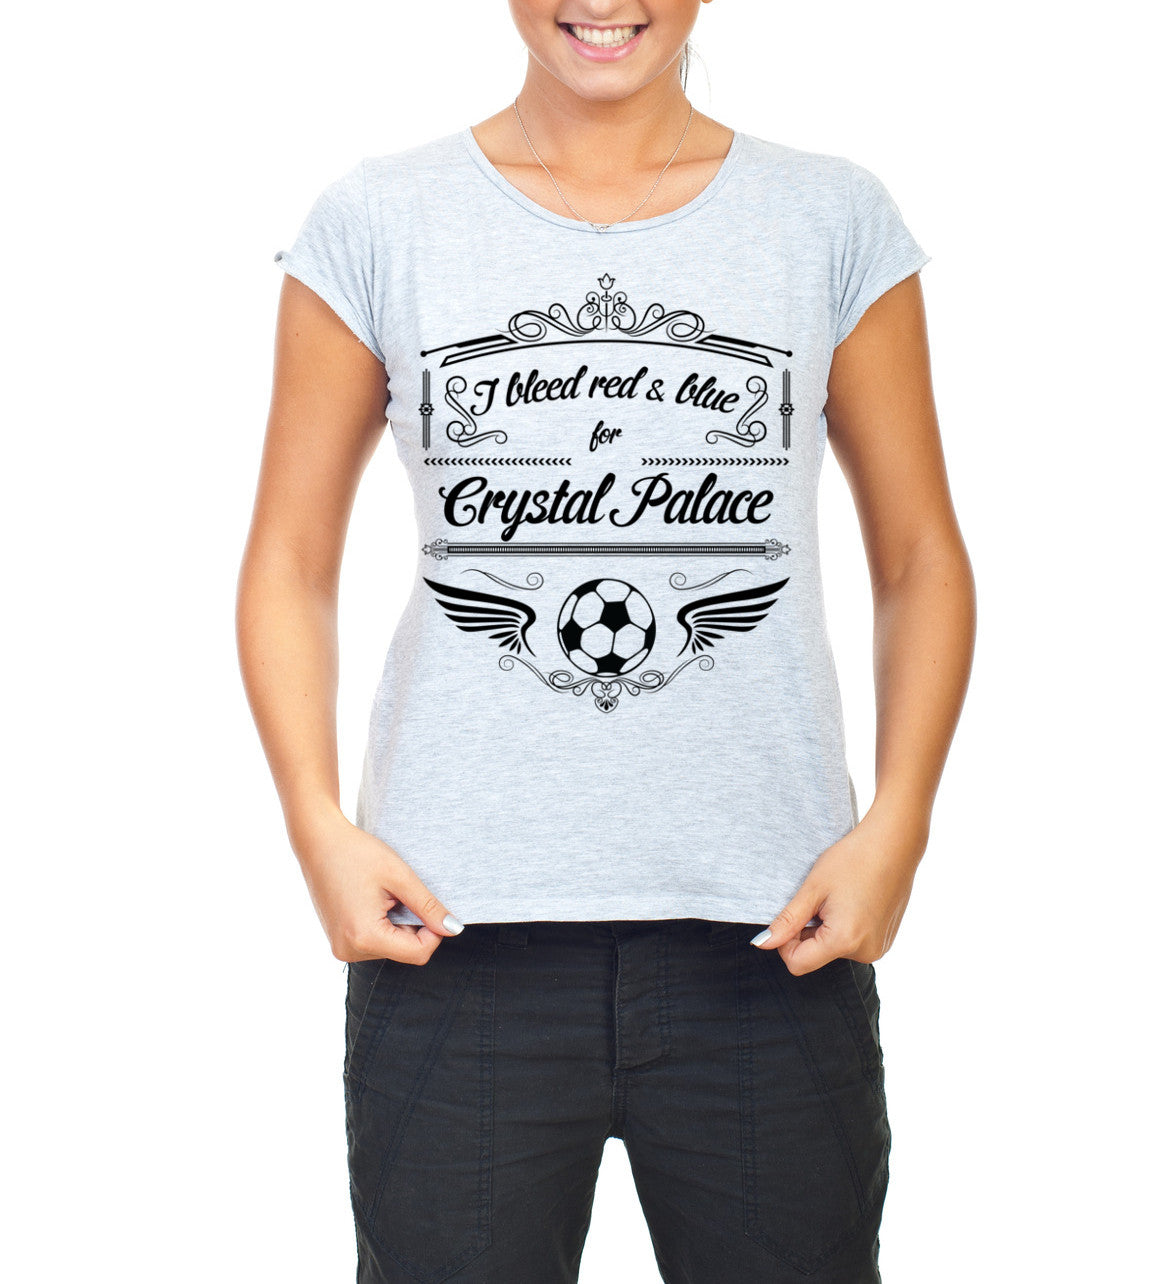 Grey Female Crystal Palace T Shirt S M L XL XXL I Bleed Red & Blue